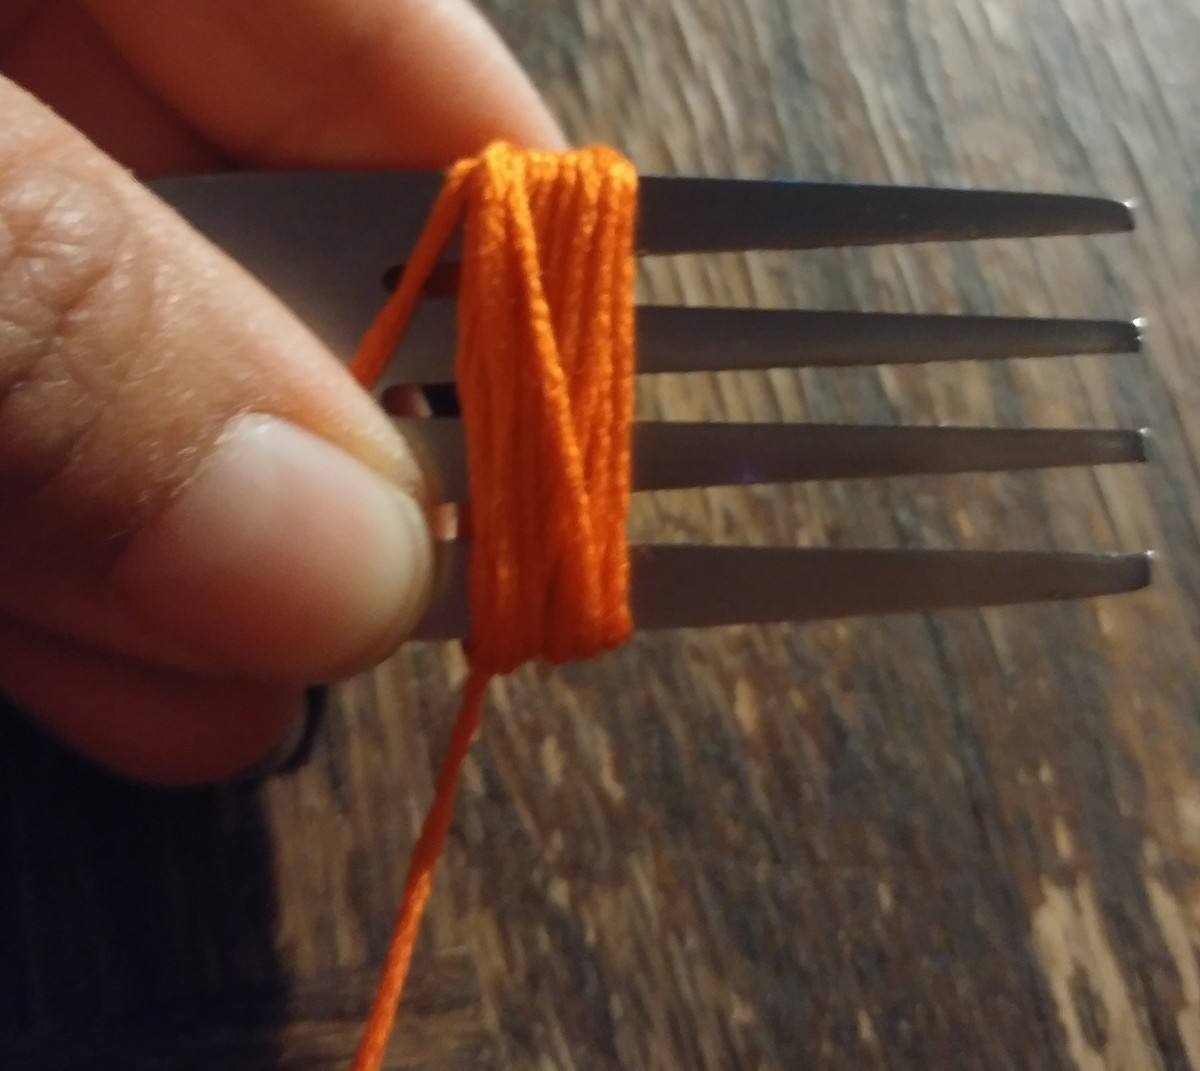 A fork is used to wrap thread around for tiny tassels.